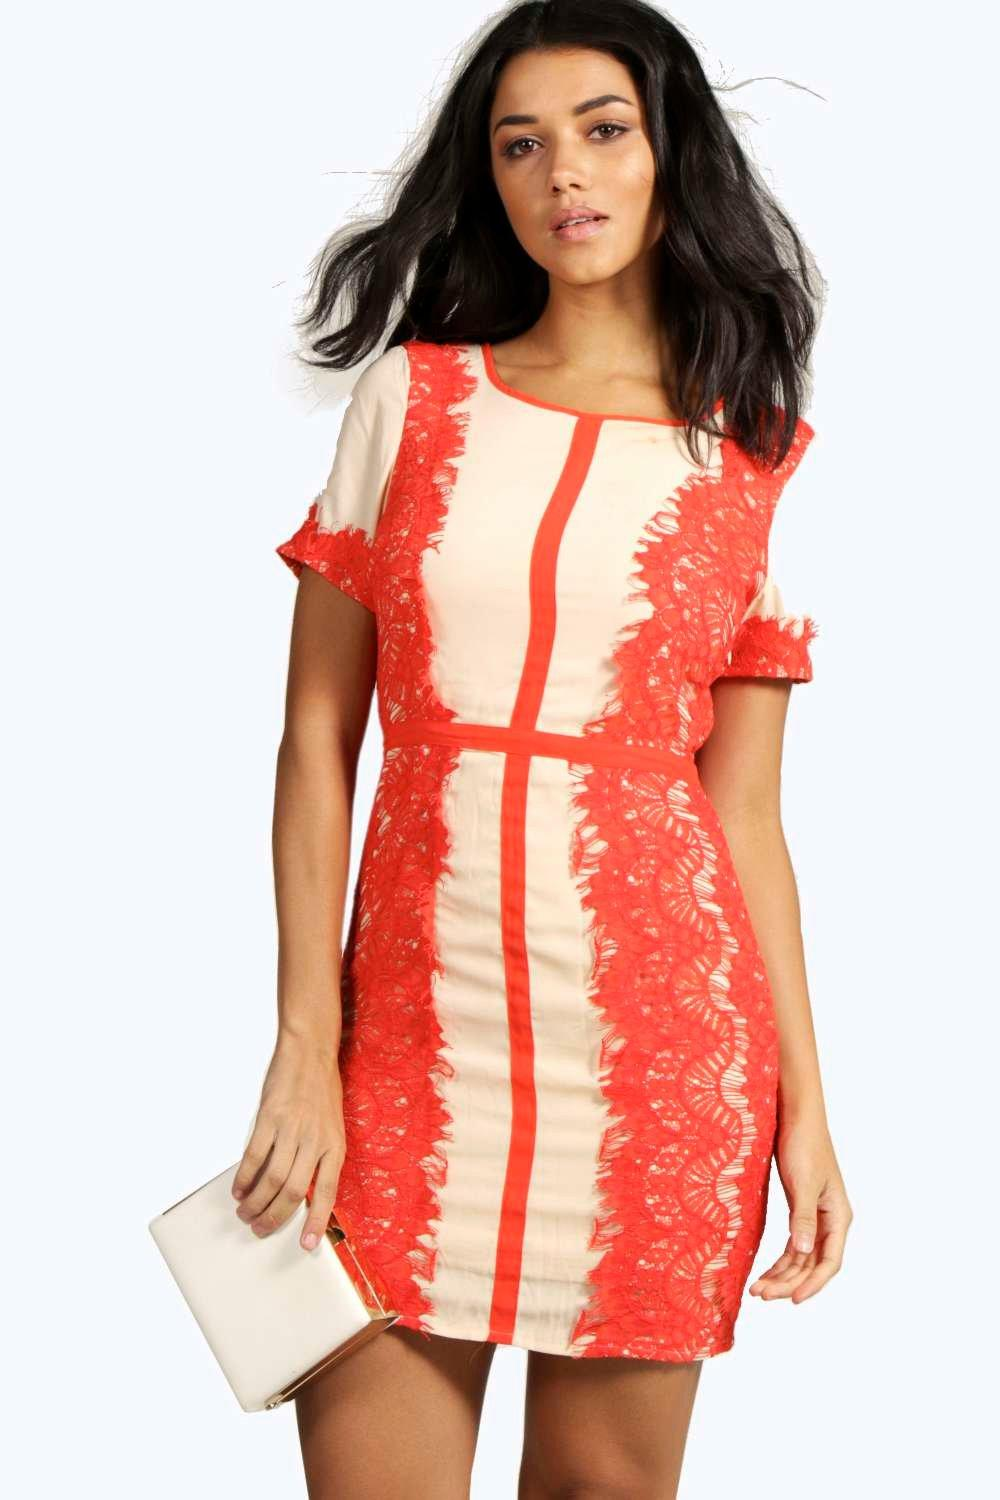 Tigerlily Boutique Panelled Lace Mini Dress